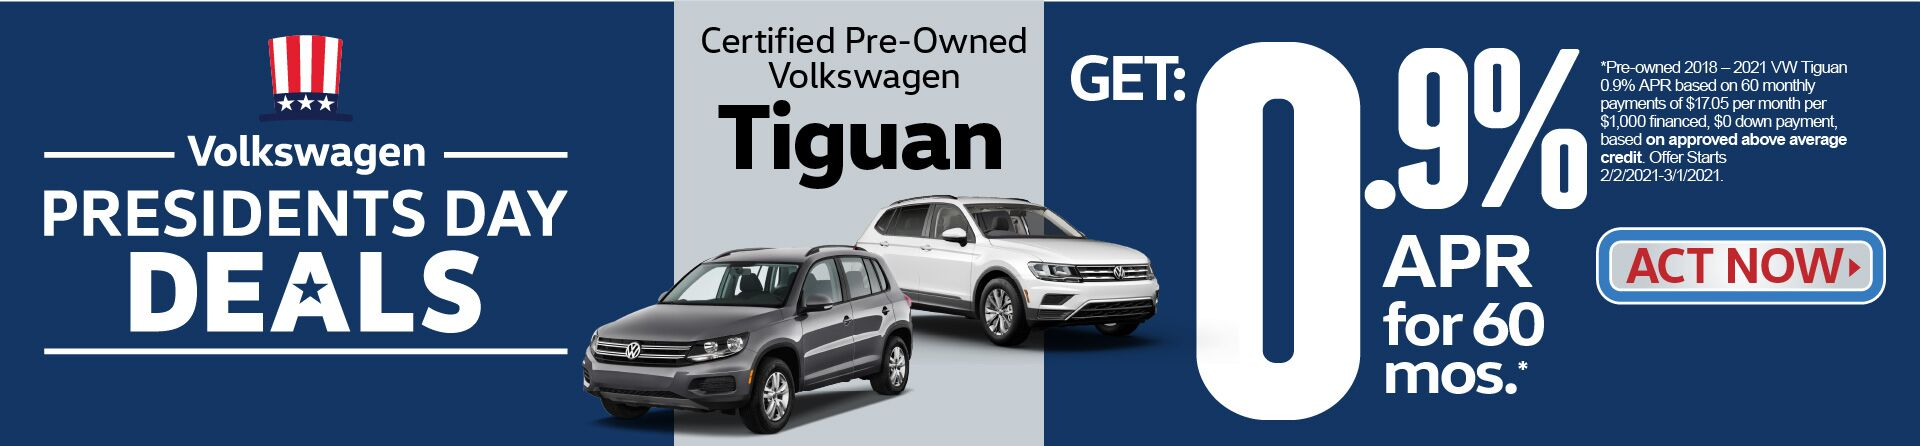 Certified Preowned Volkswagen Tiguan get 0.9% APR for 60 mos. Act now.